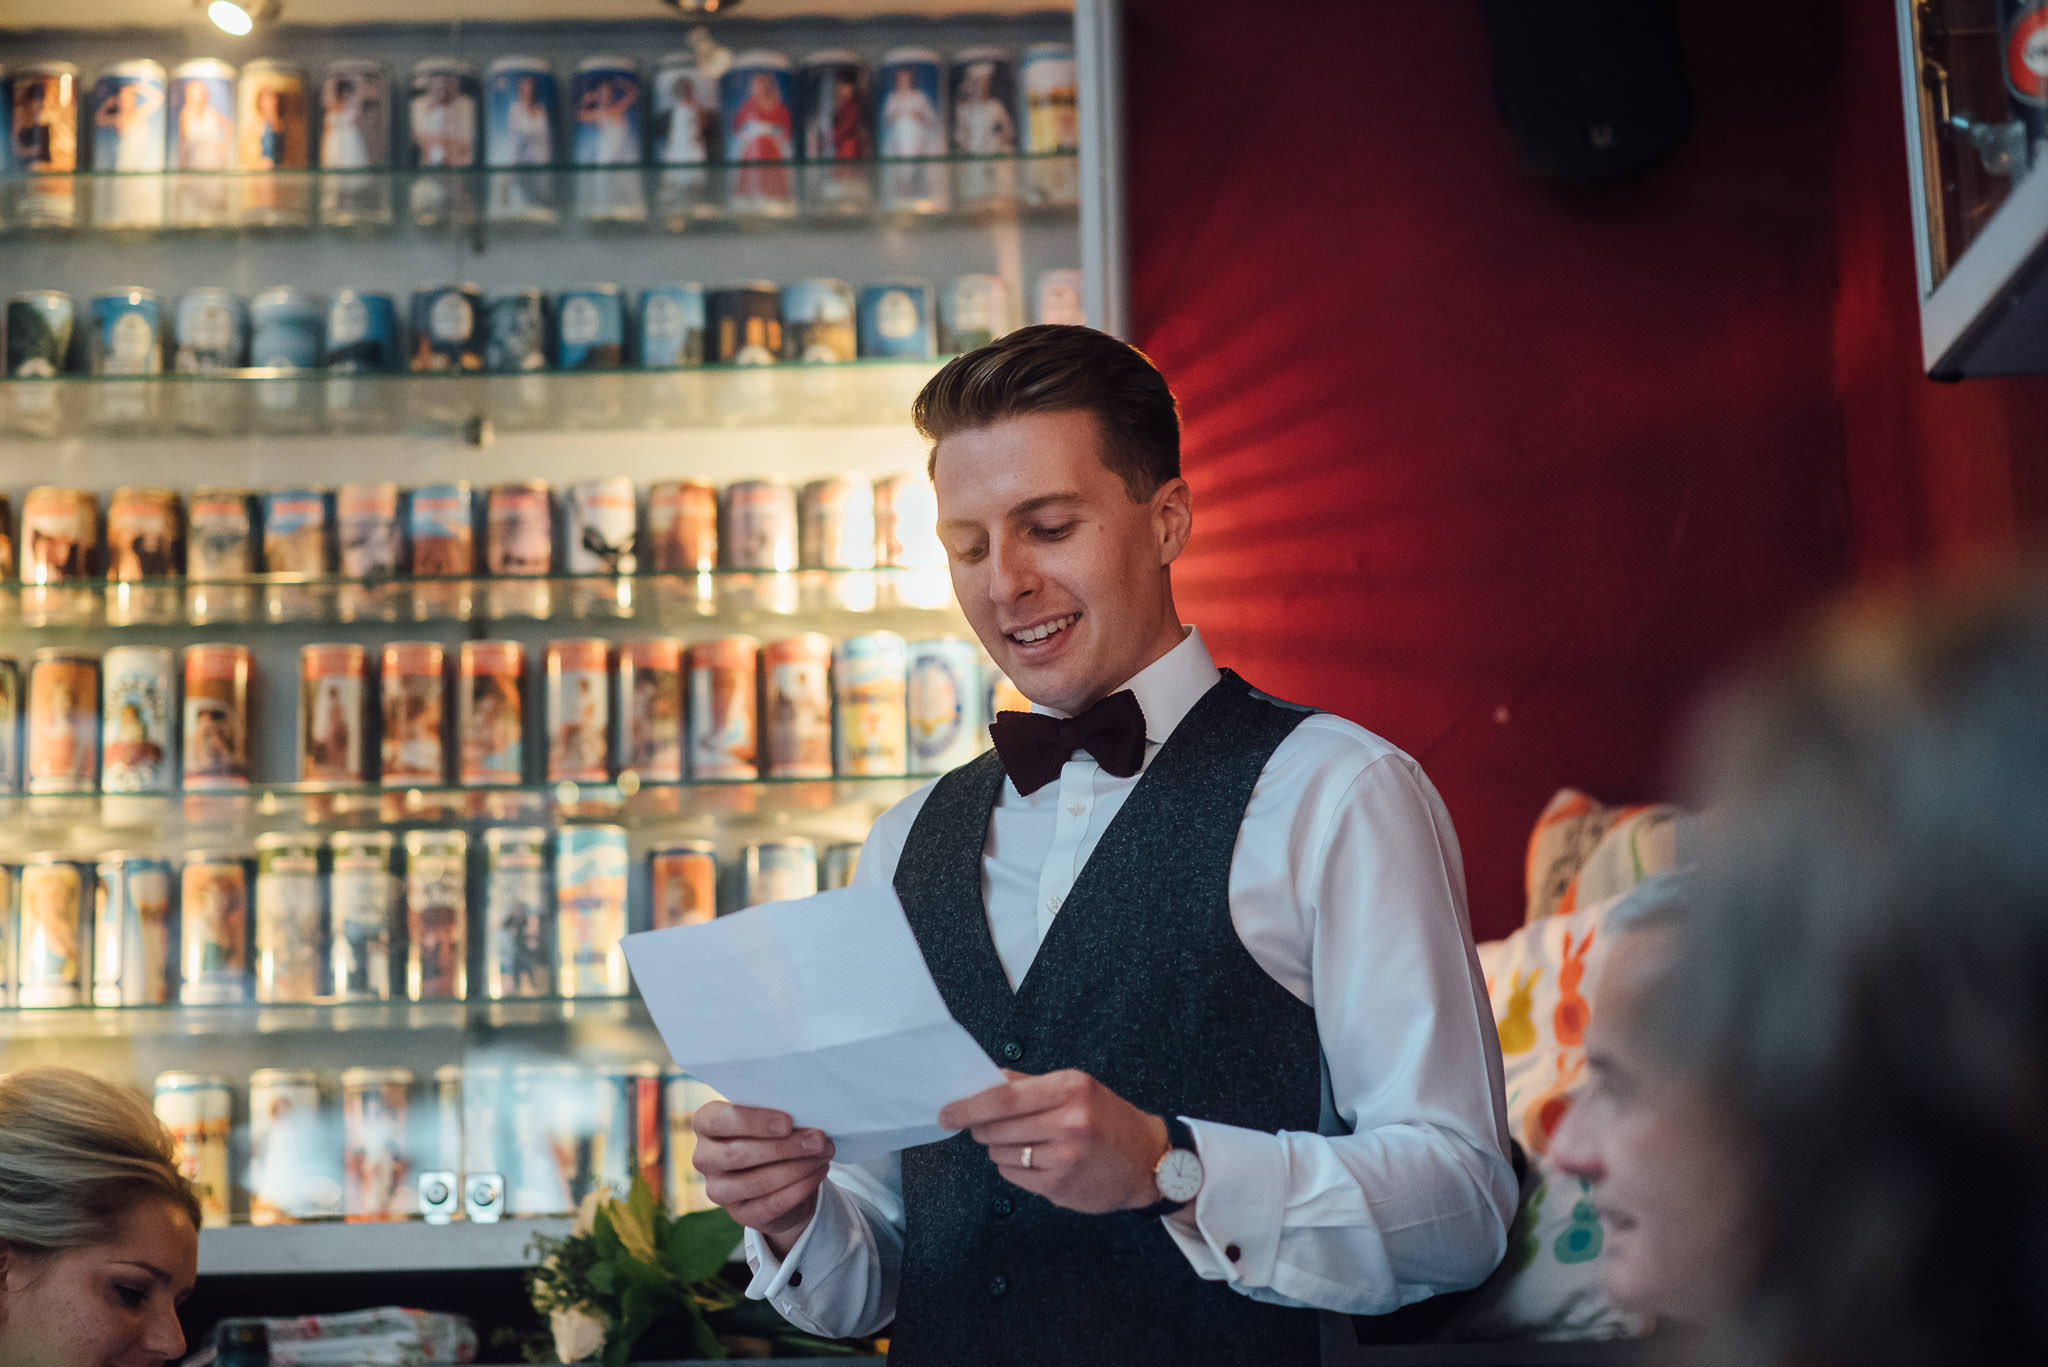 Grooms speech in the londesborough pub in stoke newington town hall wedding by creative and alternative london wedding photographer the shannons photography